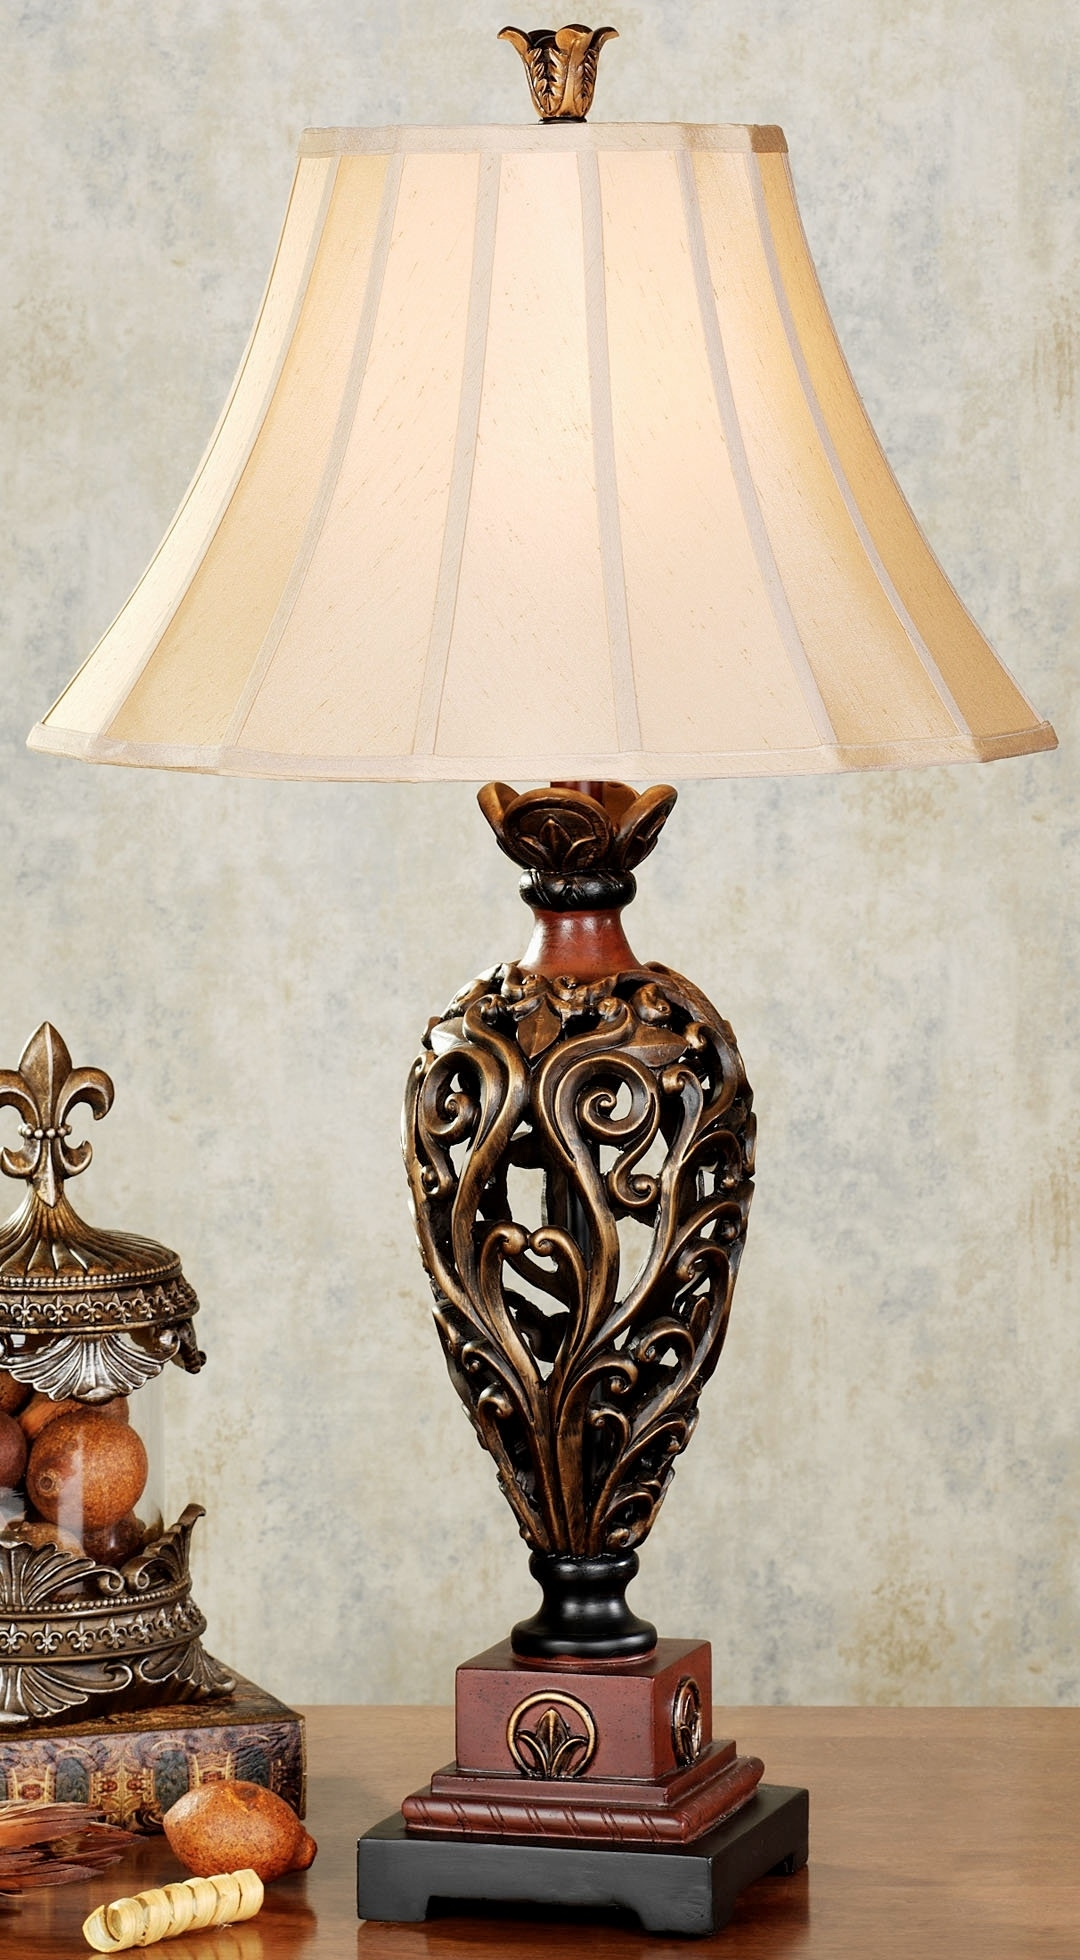 Current A Ordable Ebay Antique Lamps Gilt Table Slag Glass Vintage Accent Inside Table Lamps For Living Room At Ebay (View 9 of 15)